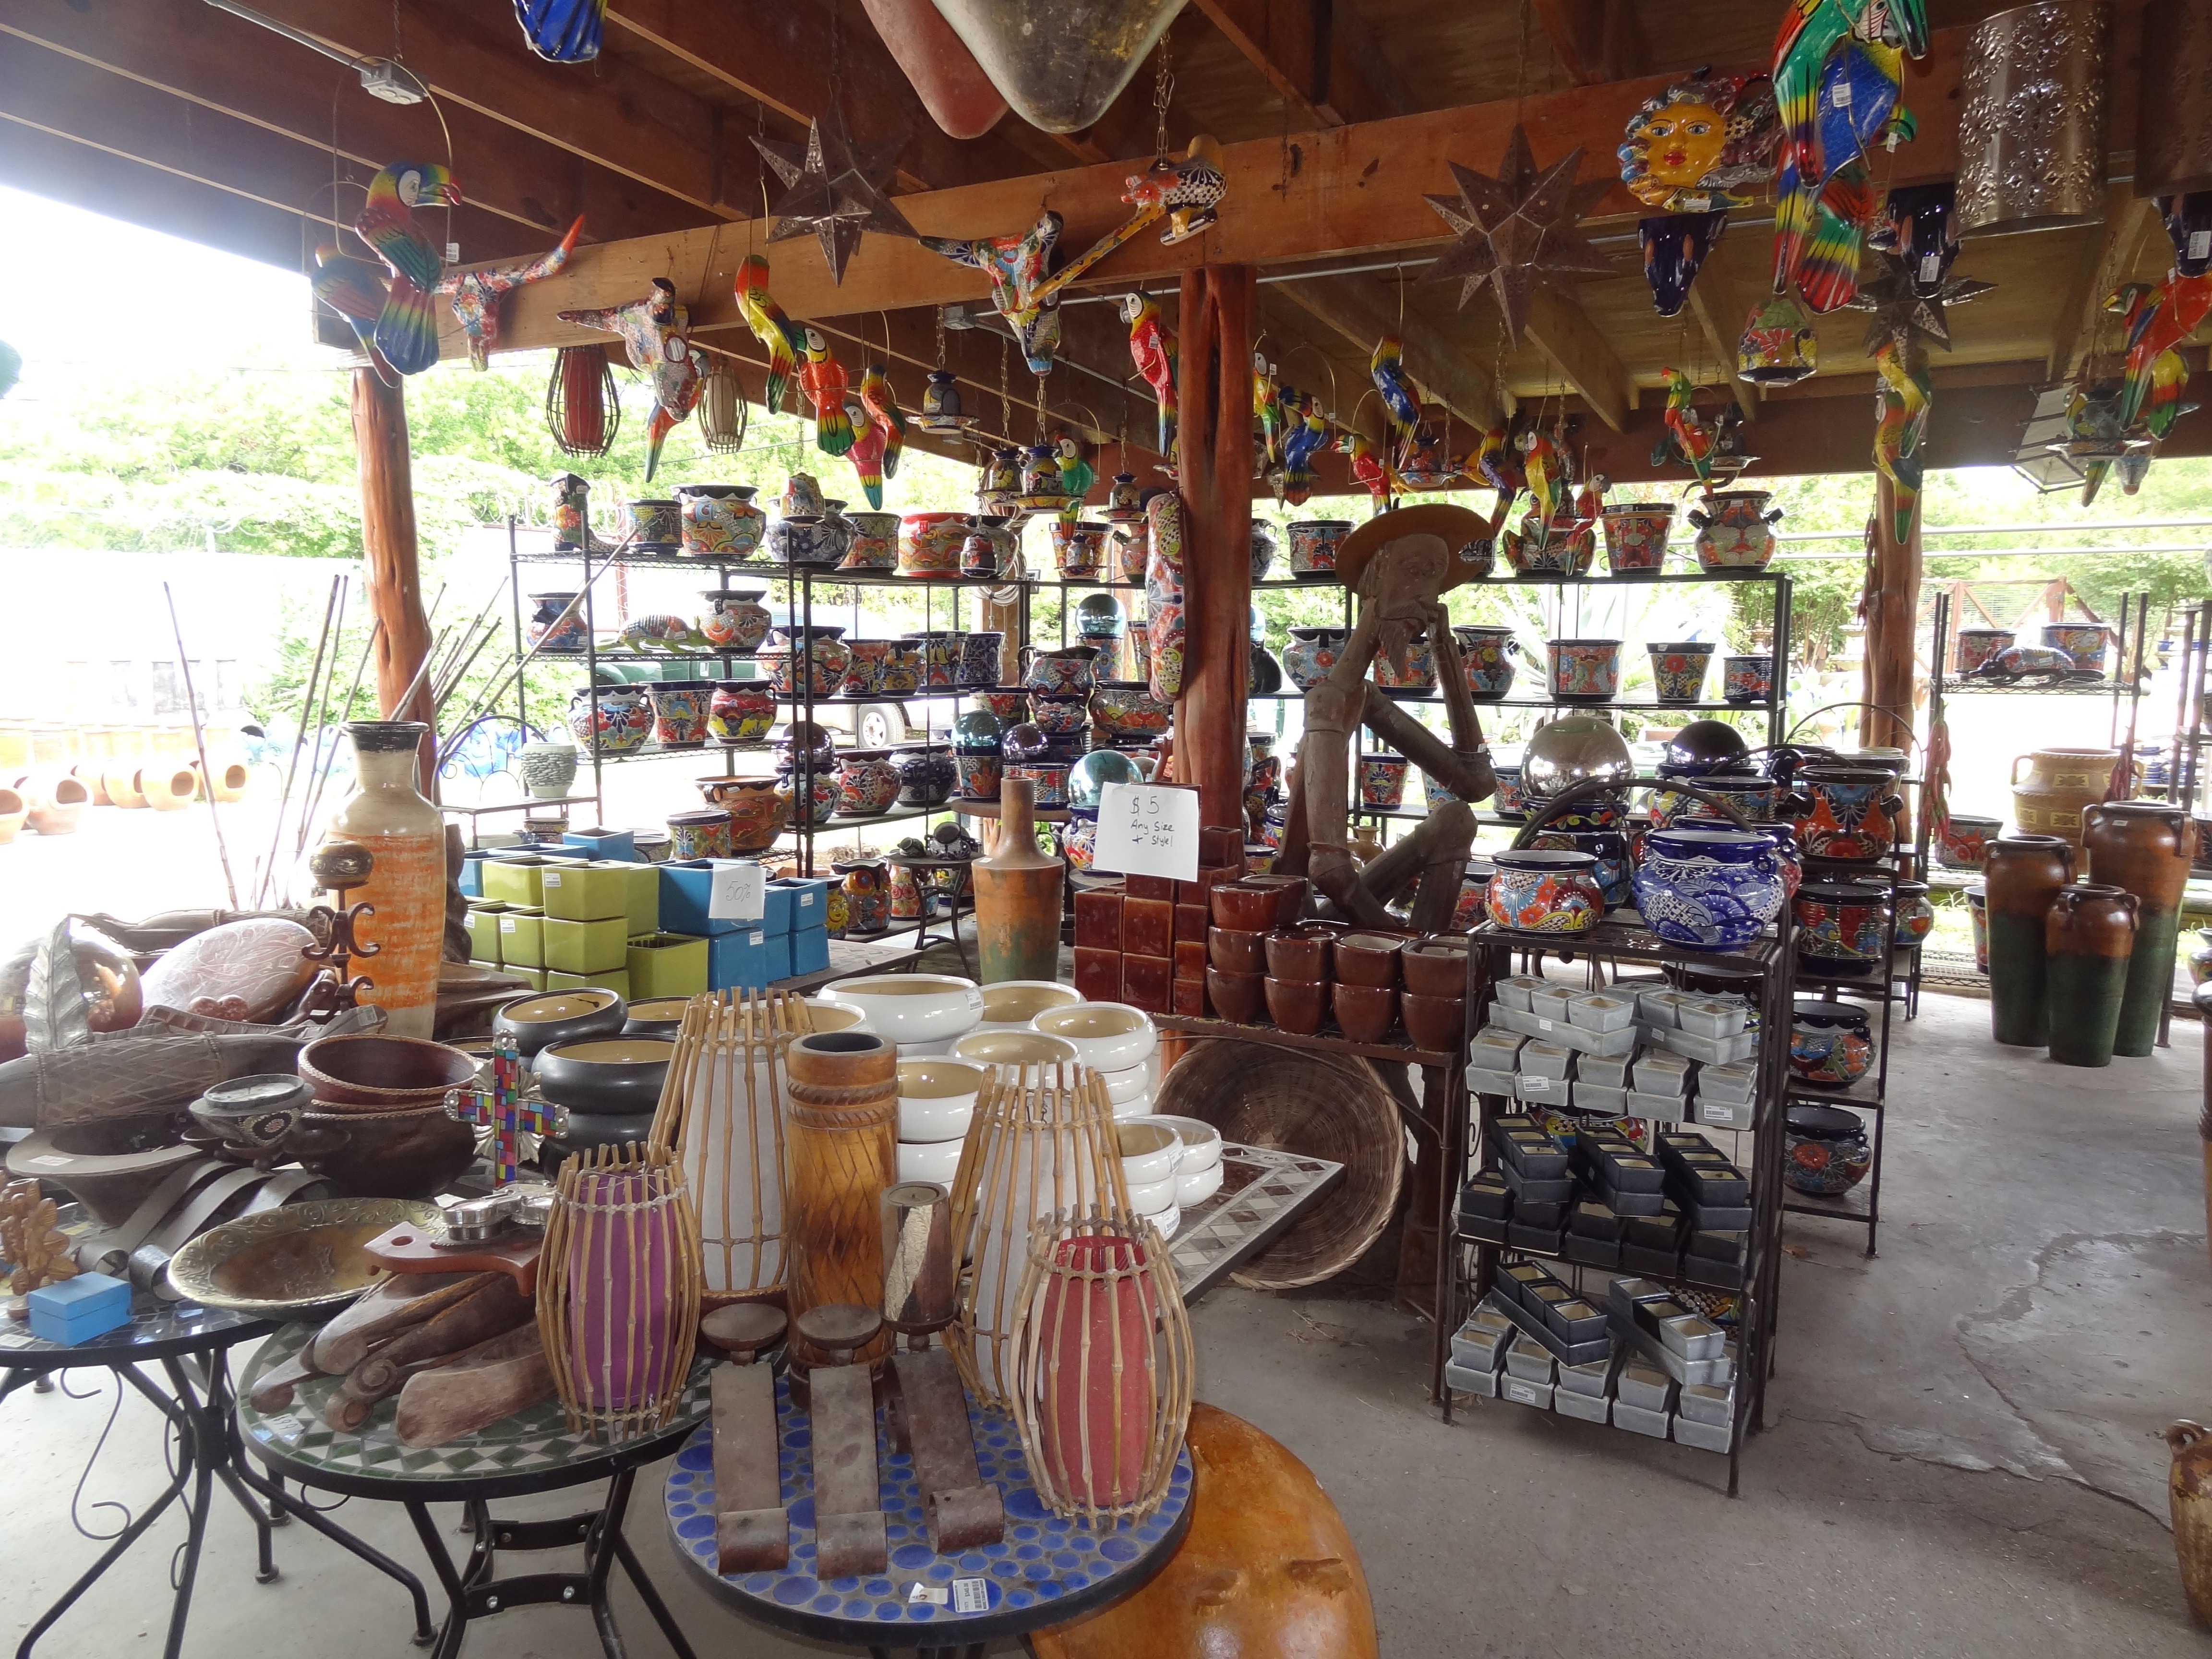 Miguel's Gallery and Garden – Pottery, Statuary, Water